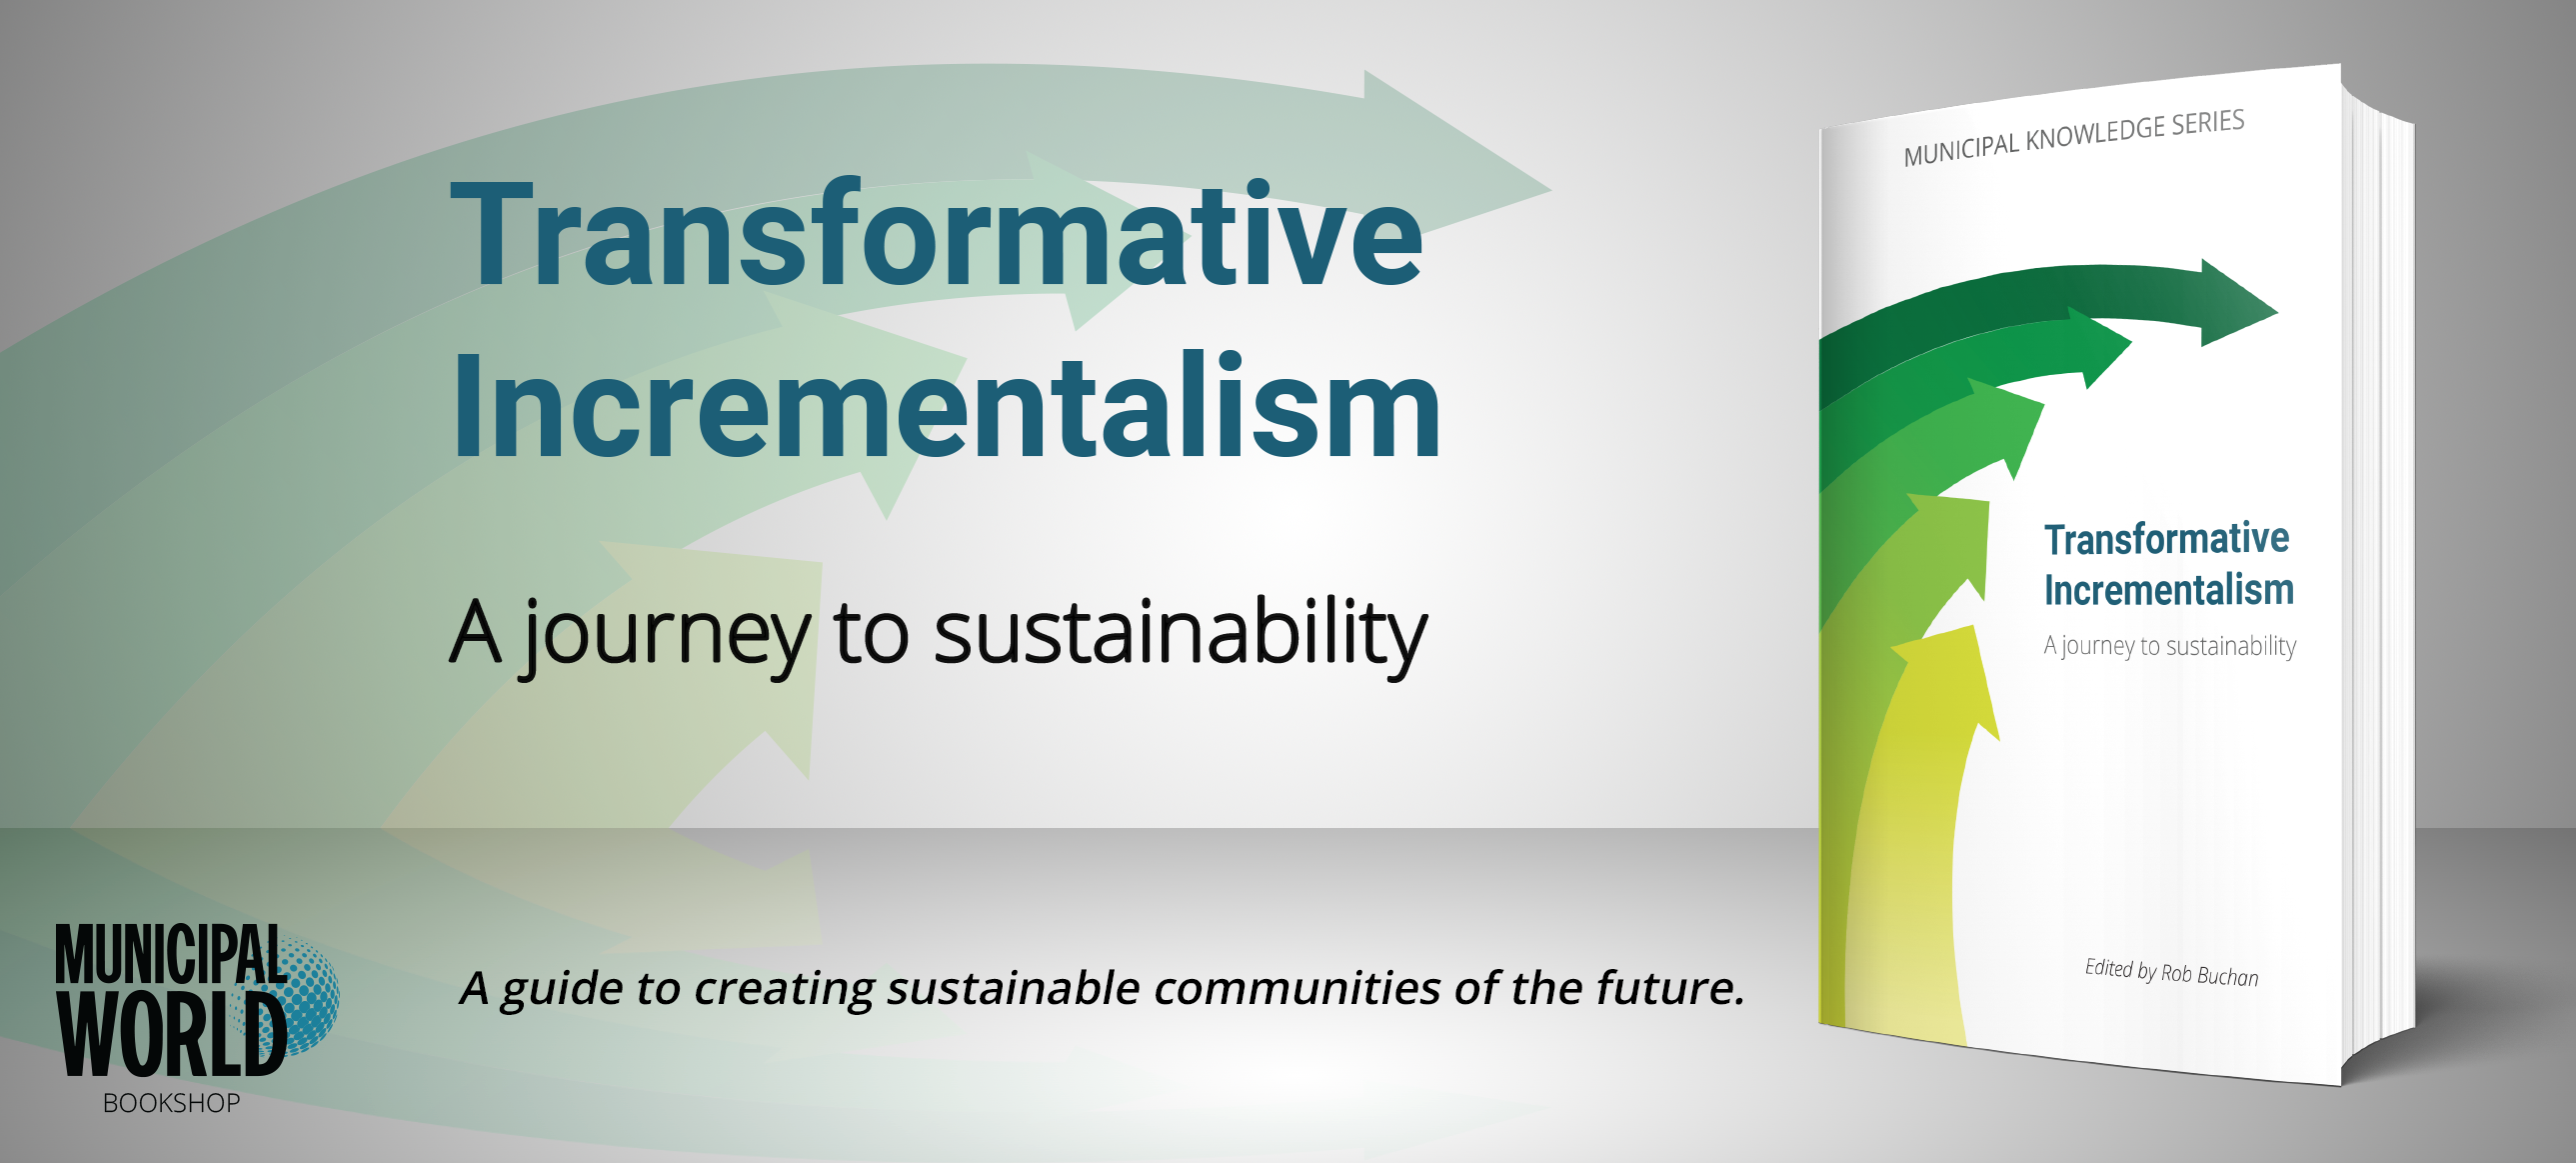 Transformative Incrementalism: A journey to sustainability